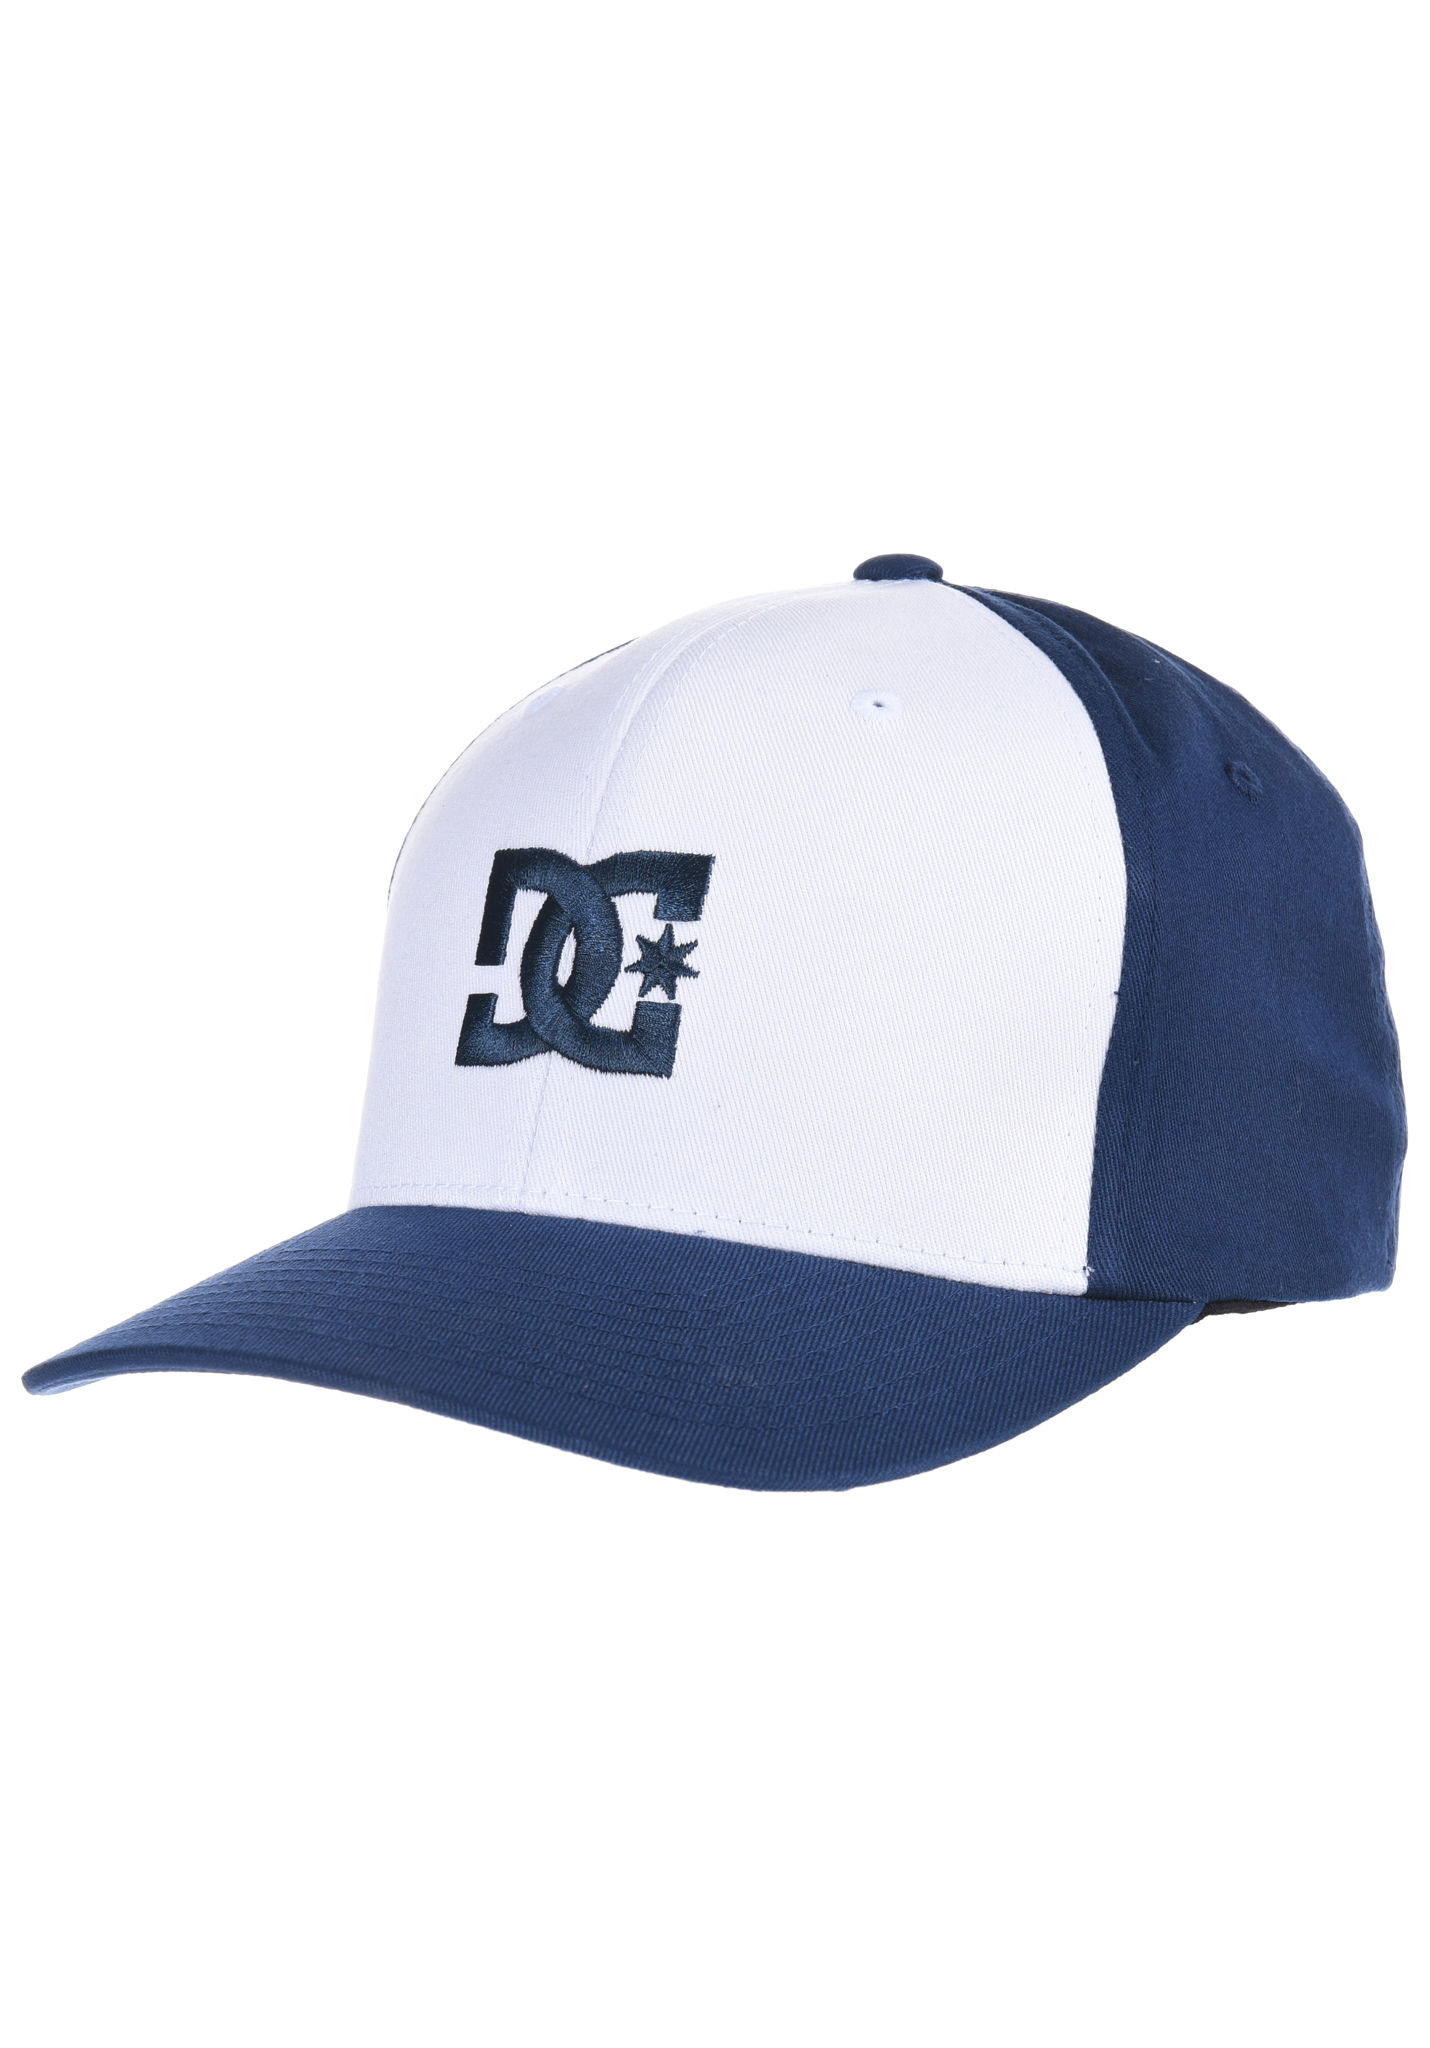 a782608ba4a DC Star 2 - Flexfit Cap for Men - Blue - Planet Sports